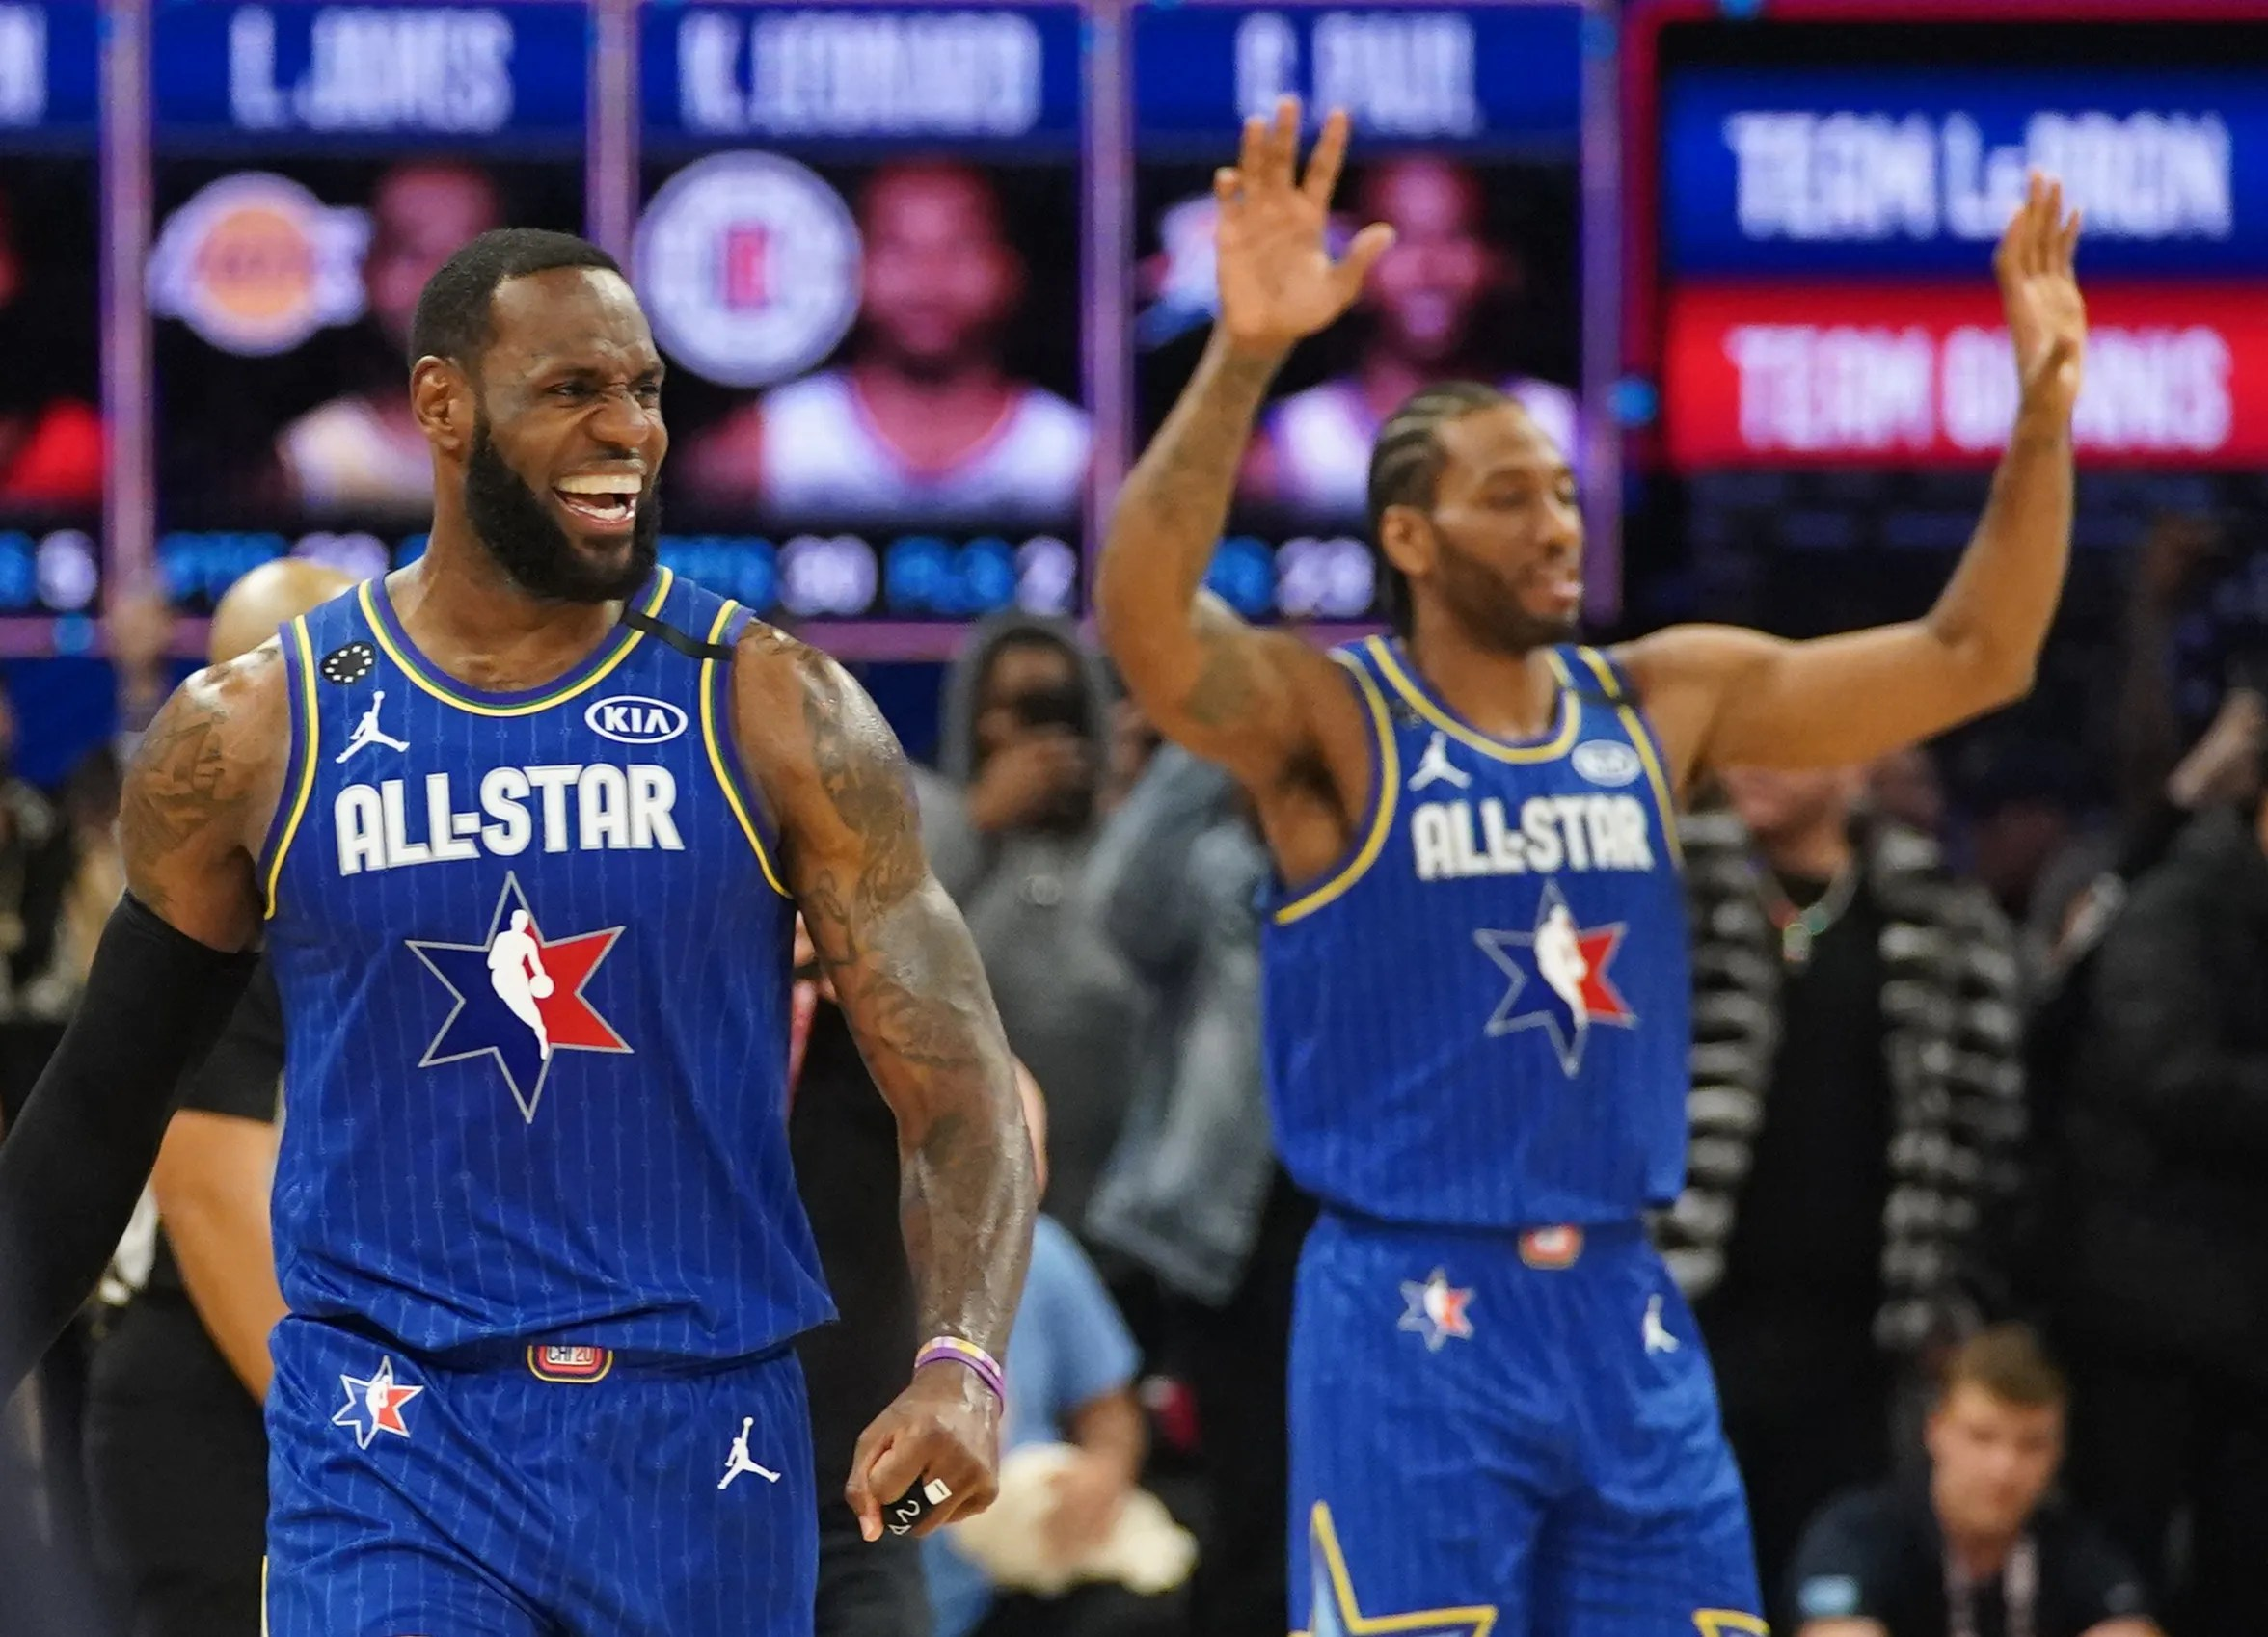 Nba All Star Game Success Should Mean More Experimentation